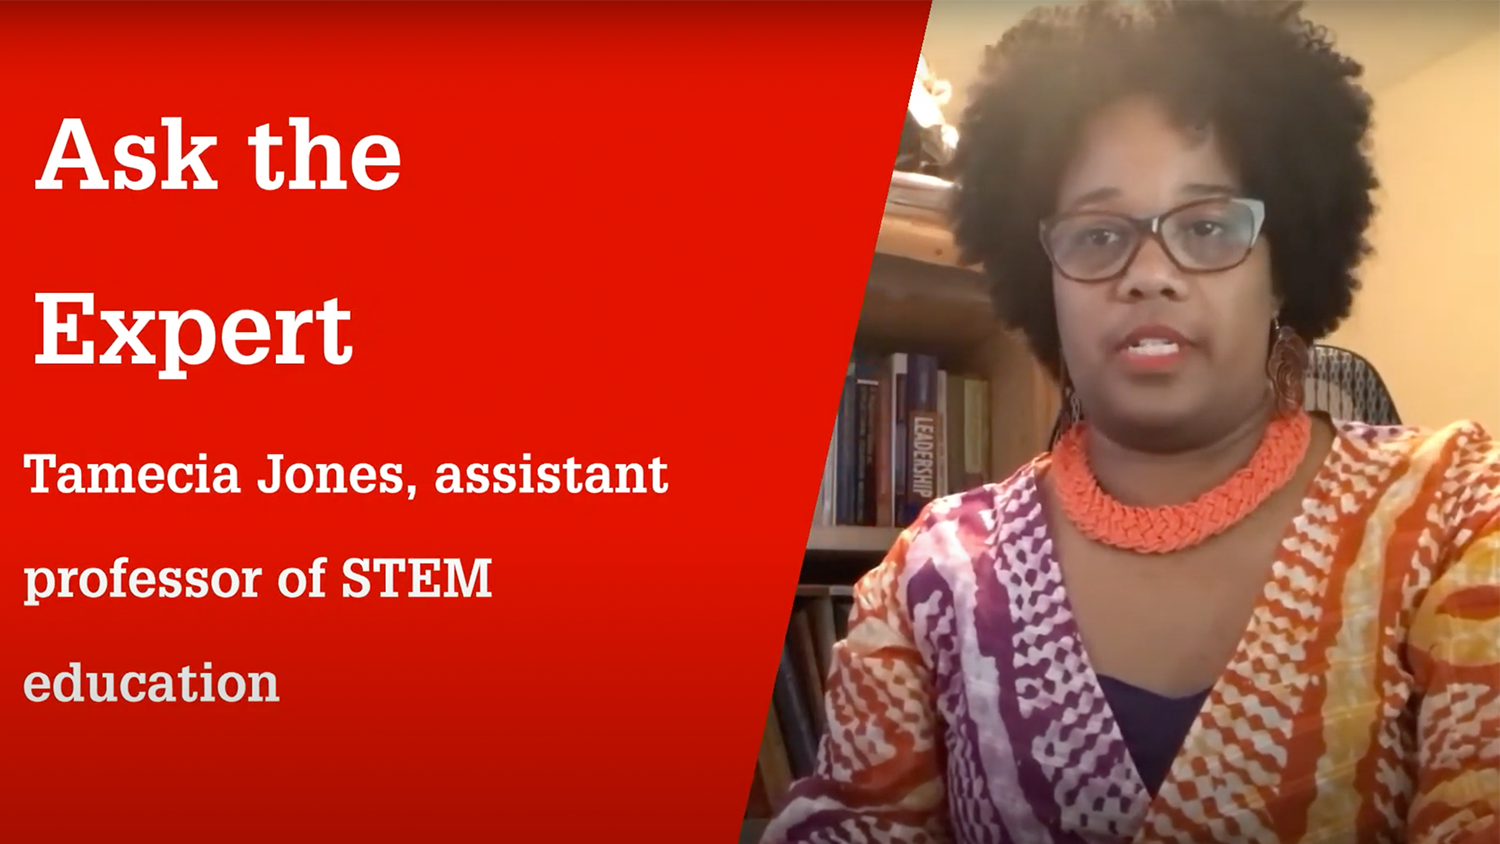 Tamecia Jones explains why K-12 students should learn about engineering concepts